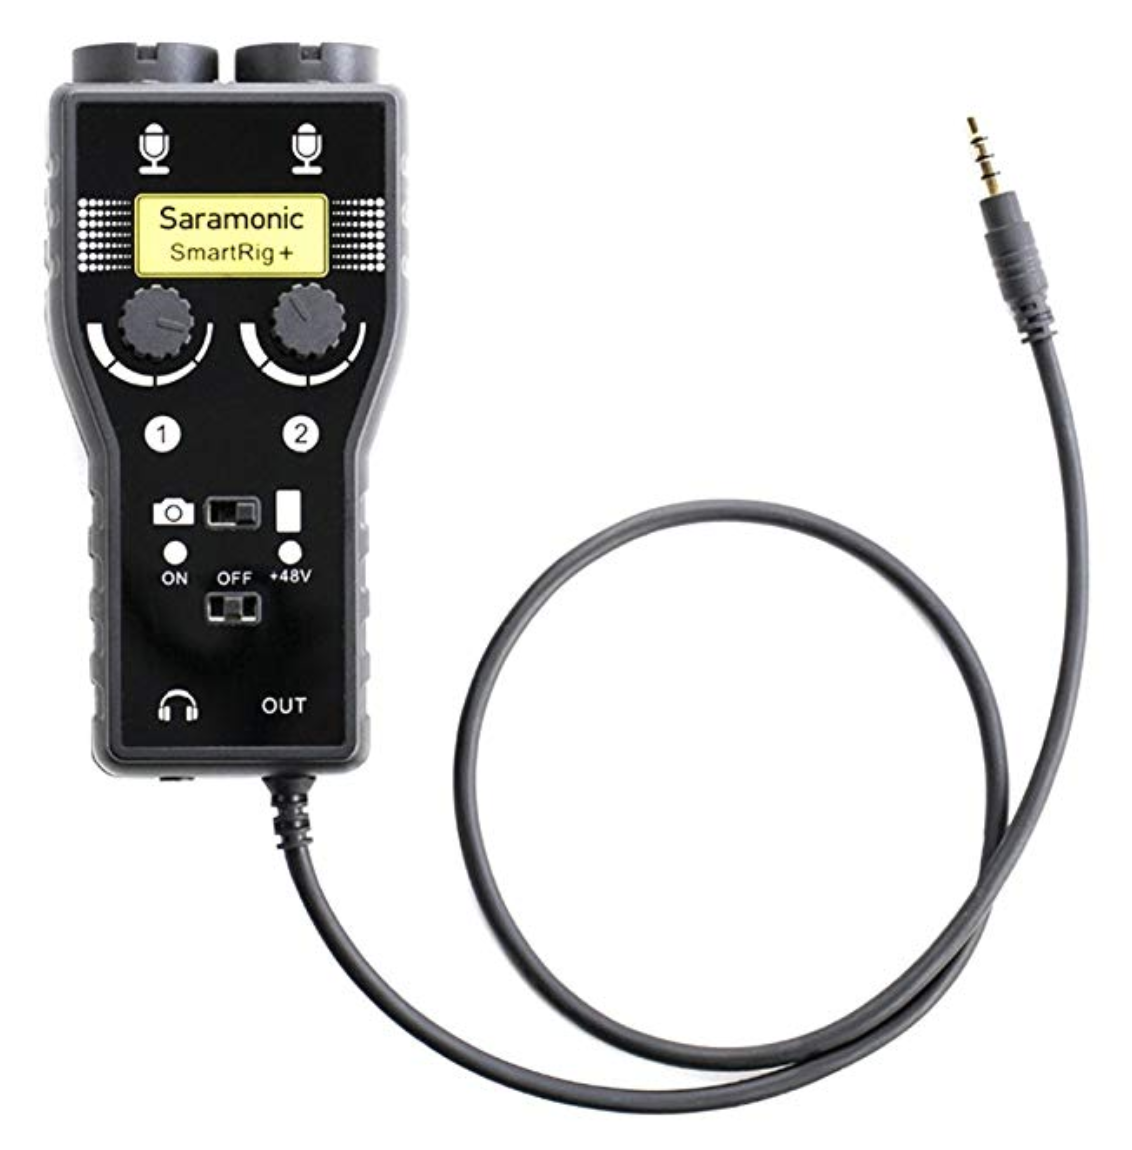 Aaron Parecki Finally Connect The Ground Wire To Bluish Screw Lamp Saramonic Smartrig 2 Channel Mixer Is A Small That Provides Phantom Power So You Can Use Nice Microphones With It Plugs Into 1 8 Jack On